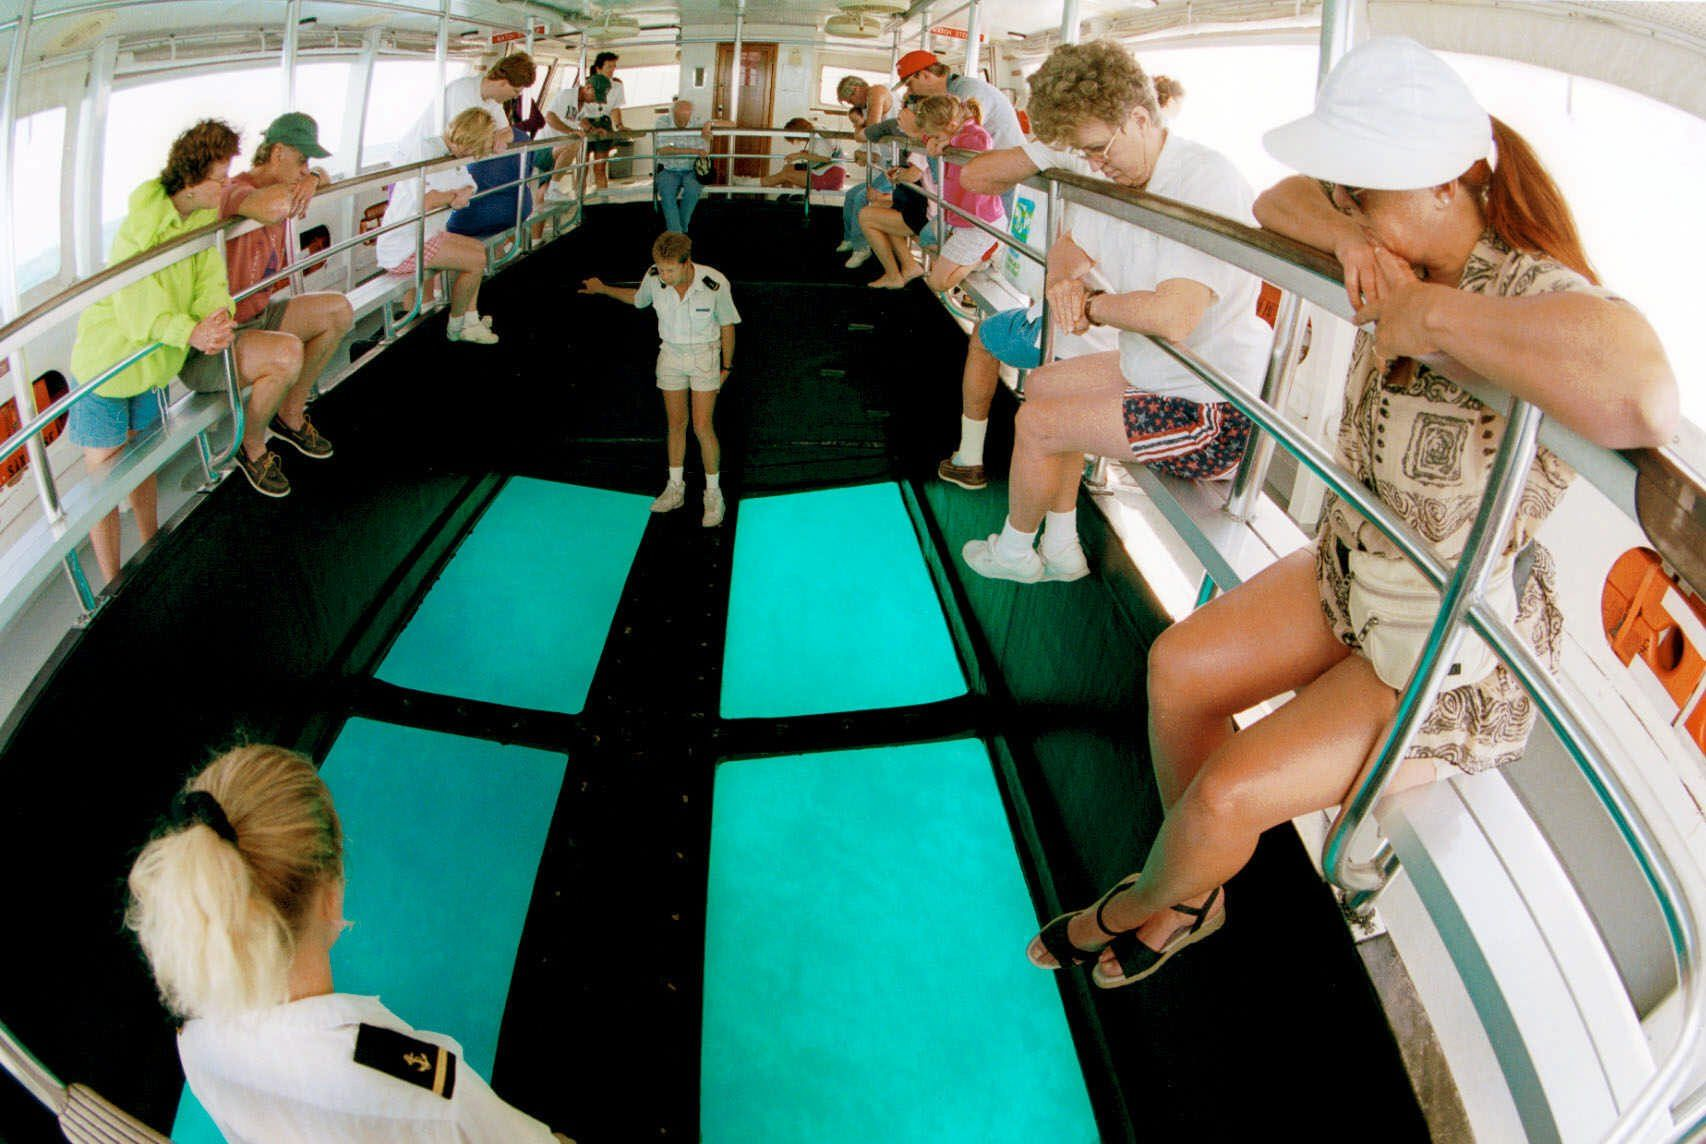 Tourists aboard the ship San Jose listen to tour guide Scott Buckley, standing by glass bottom, describe fish and features in the coral reef in Key Largo, Fla., at John Pennekamp Coral Reef State Park, Tuesday, Feb. 2, 1999. The ship holds 98 passengers and makes 3 trips to the coral reef 6.5 miles from the shore of the park. A new boat coming this spring will hold 150 passengers. Well over 100,000 people take the glass bottom boat tour every year. Along with the glass bottom boats they also have 3 snorkle boats the take approx. 60,000 snorklers and divers to the reef throughout the year.  (AP Photo/Mickey Krakowski)